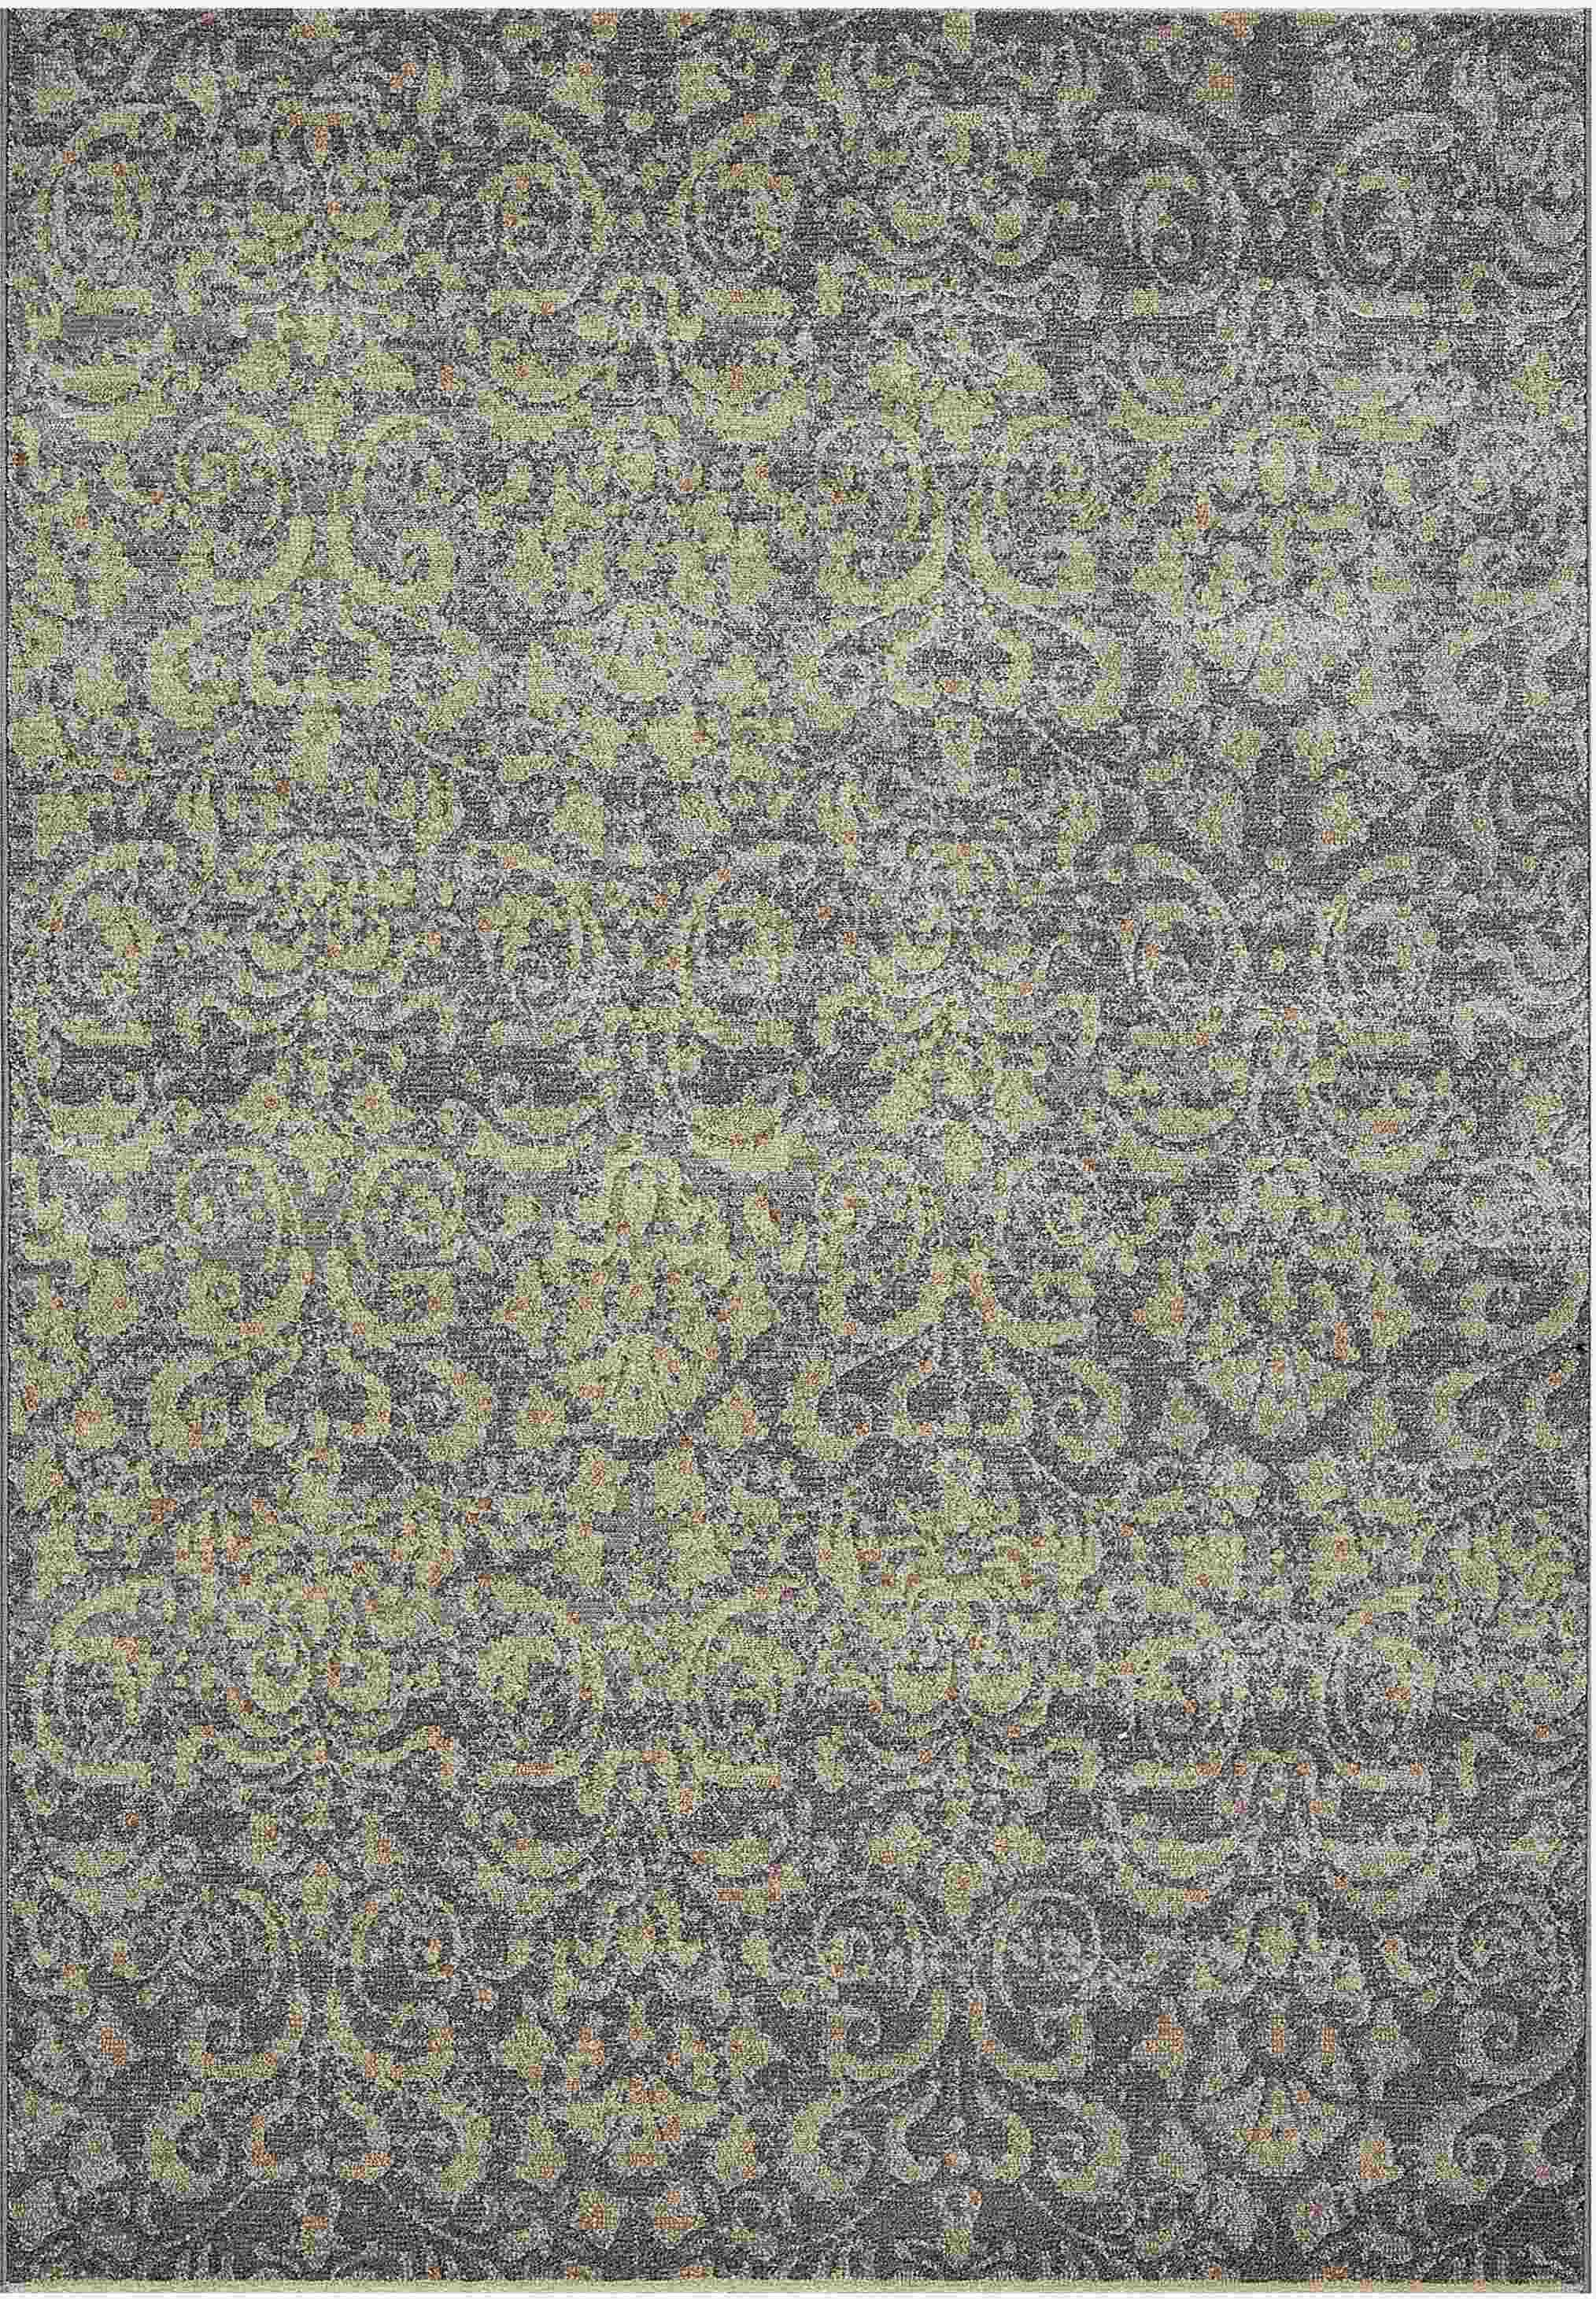 Dynamic Rugs Mysterio Medallion/damask Silver 1217 Area Rug